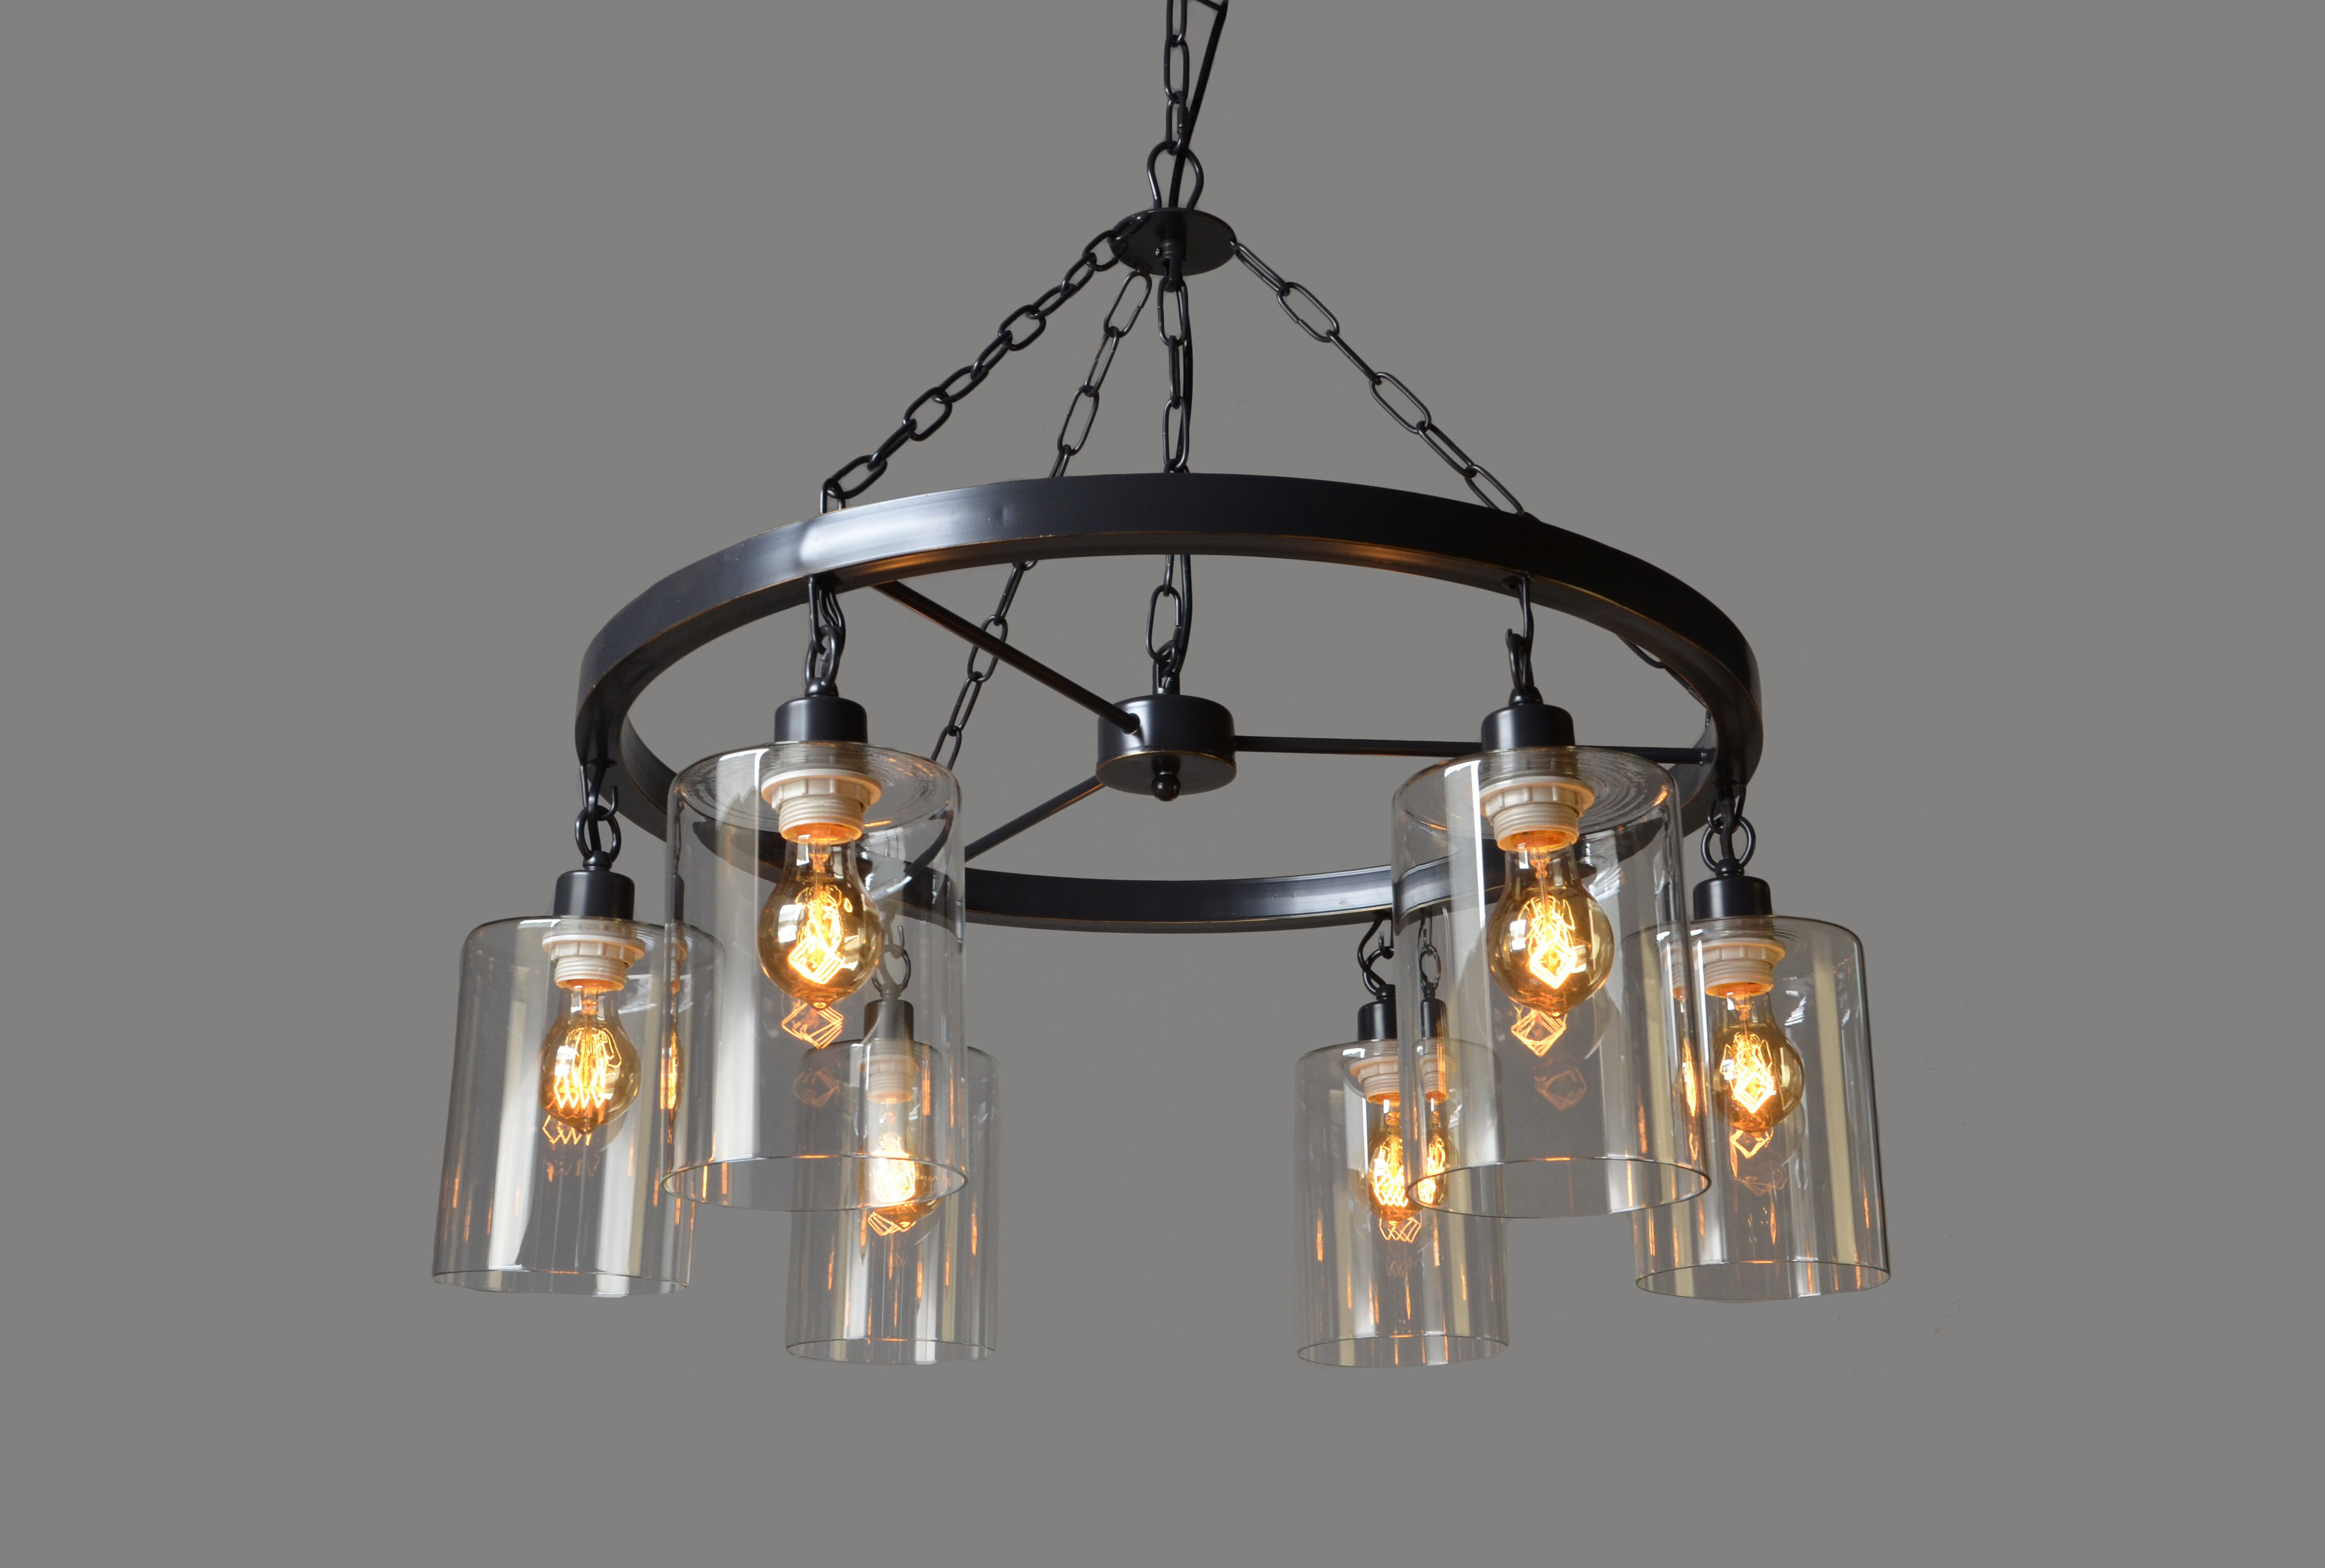 Wagon Wheel Williston Forge Chandeliers You Ll Love In 2021 Wayfair